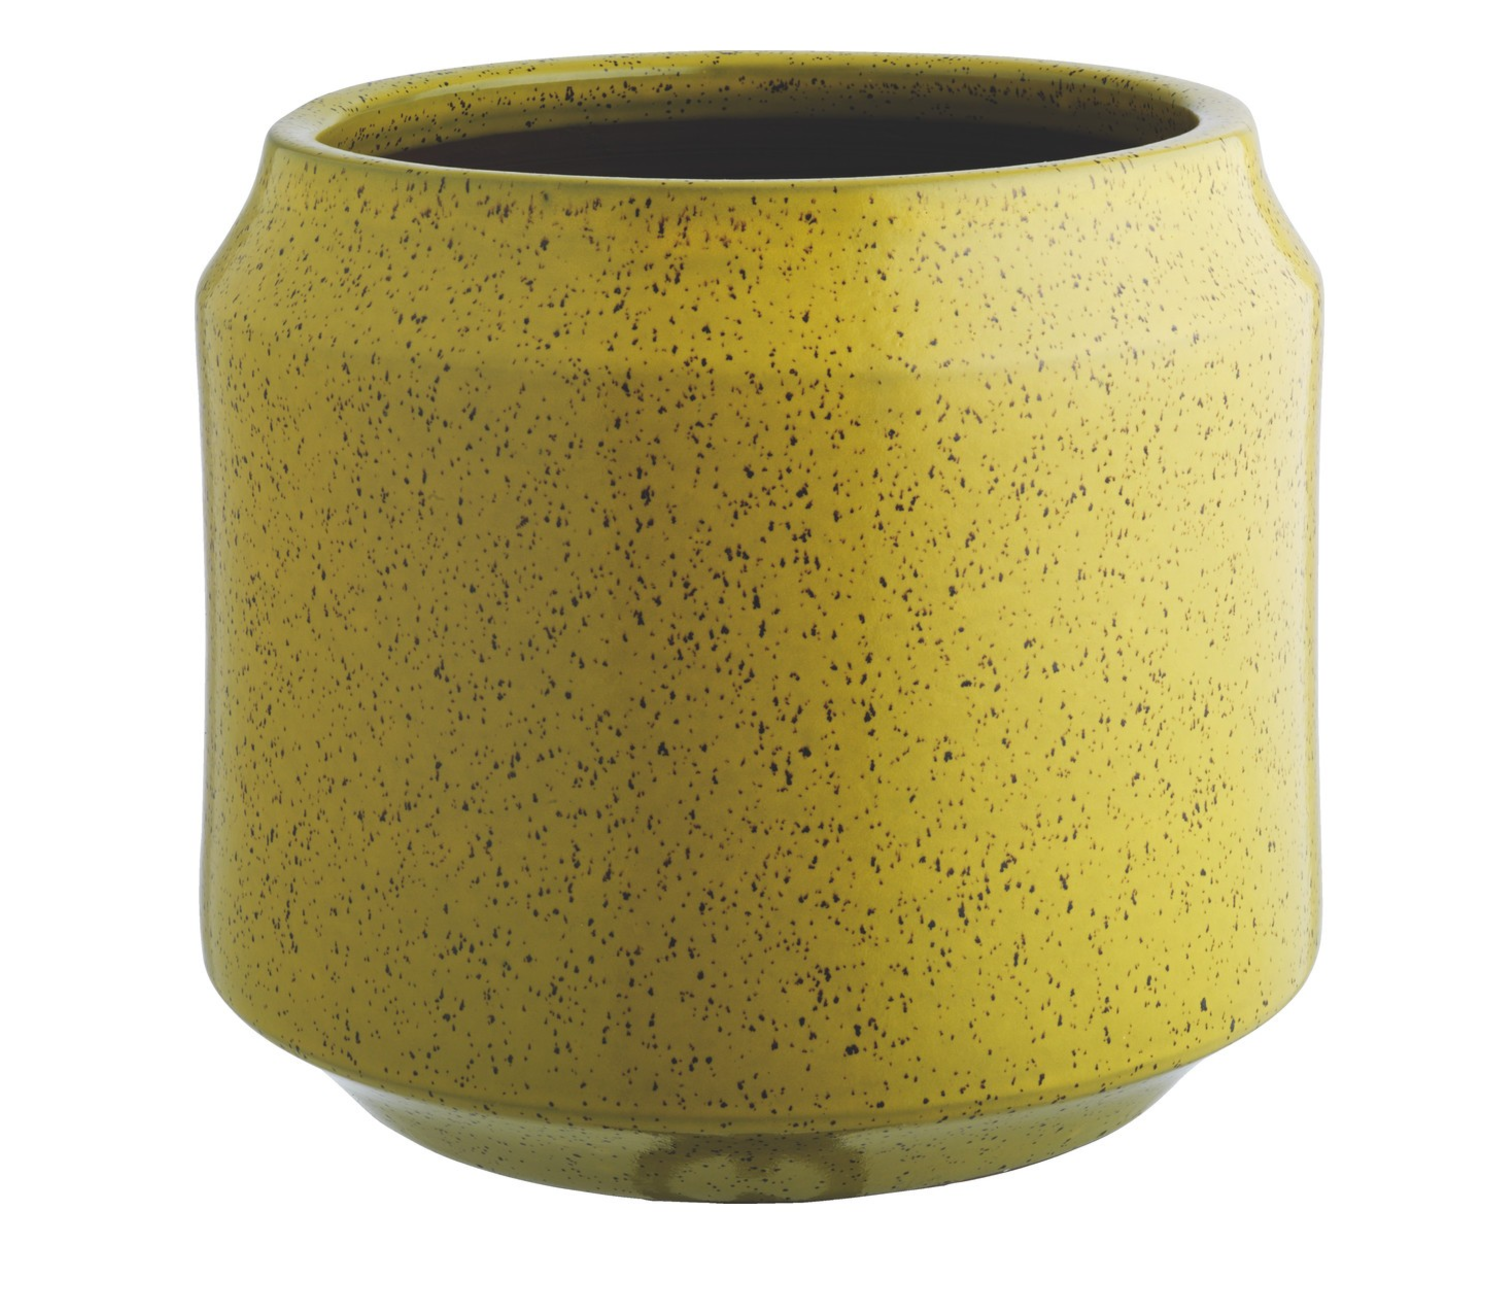 TRURO Yellow Ceramic Planter 33 X 39cm